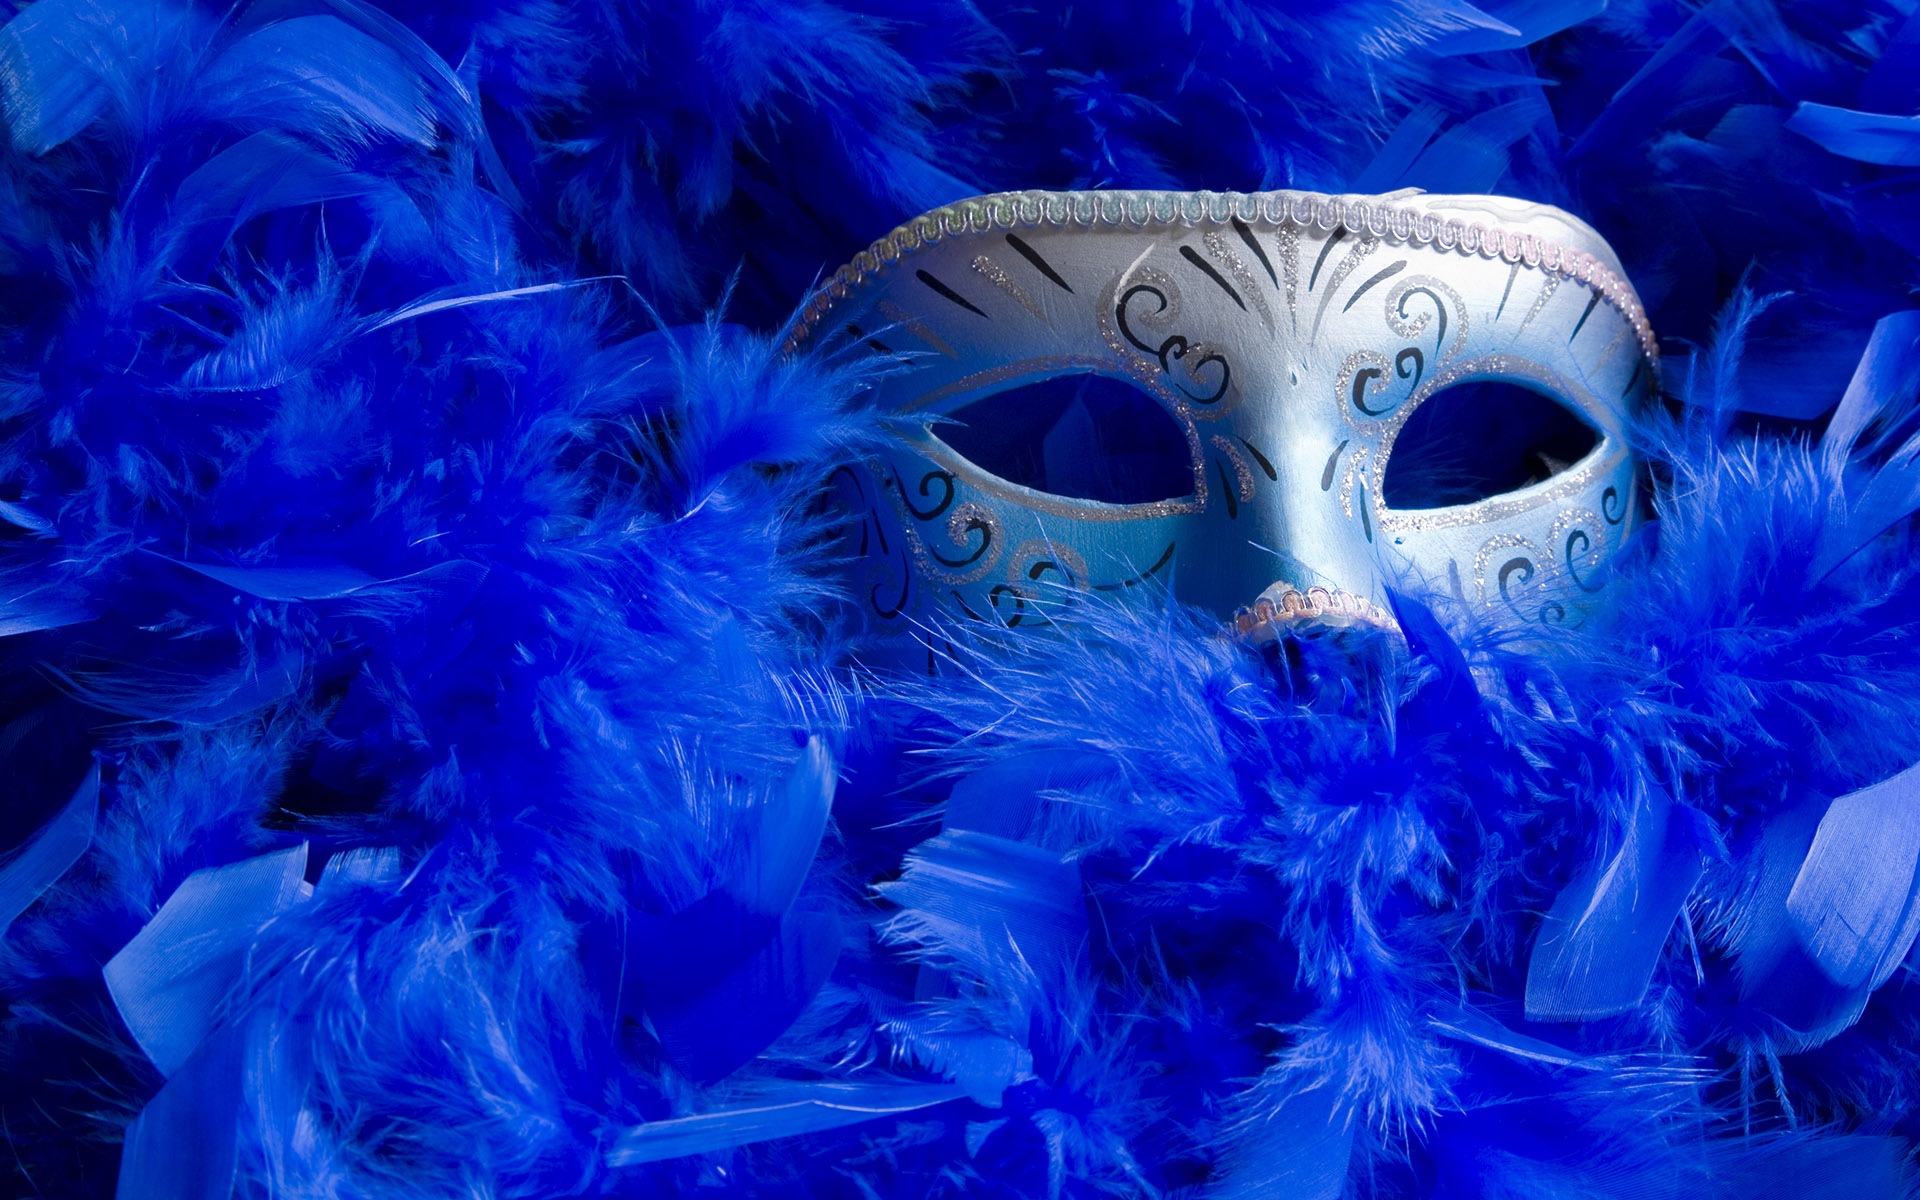 Venetian mask among bright blue feathers.